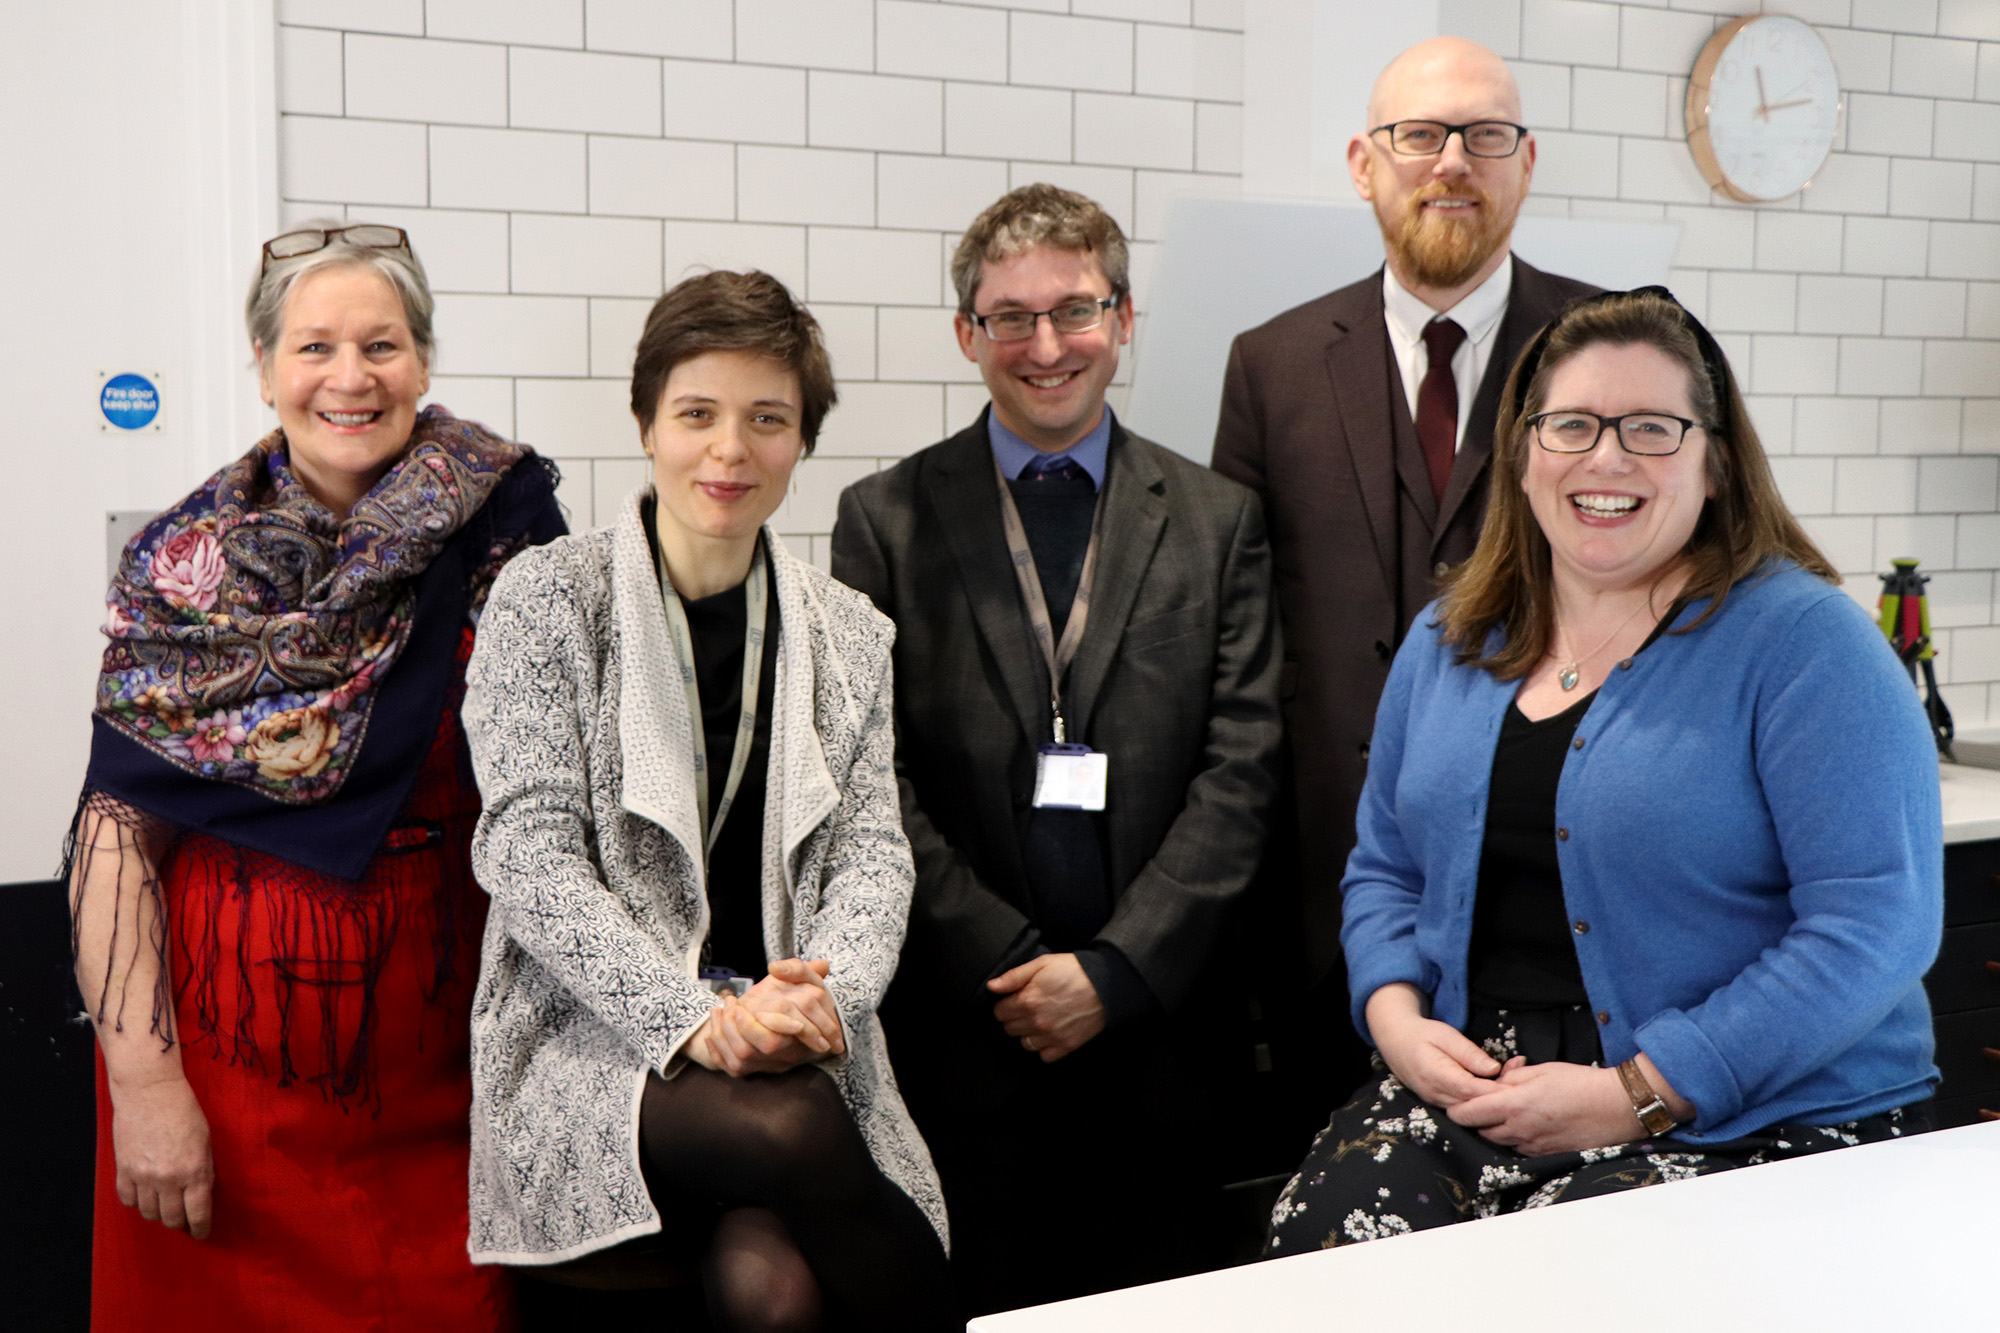 Oaks House Team